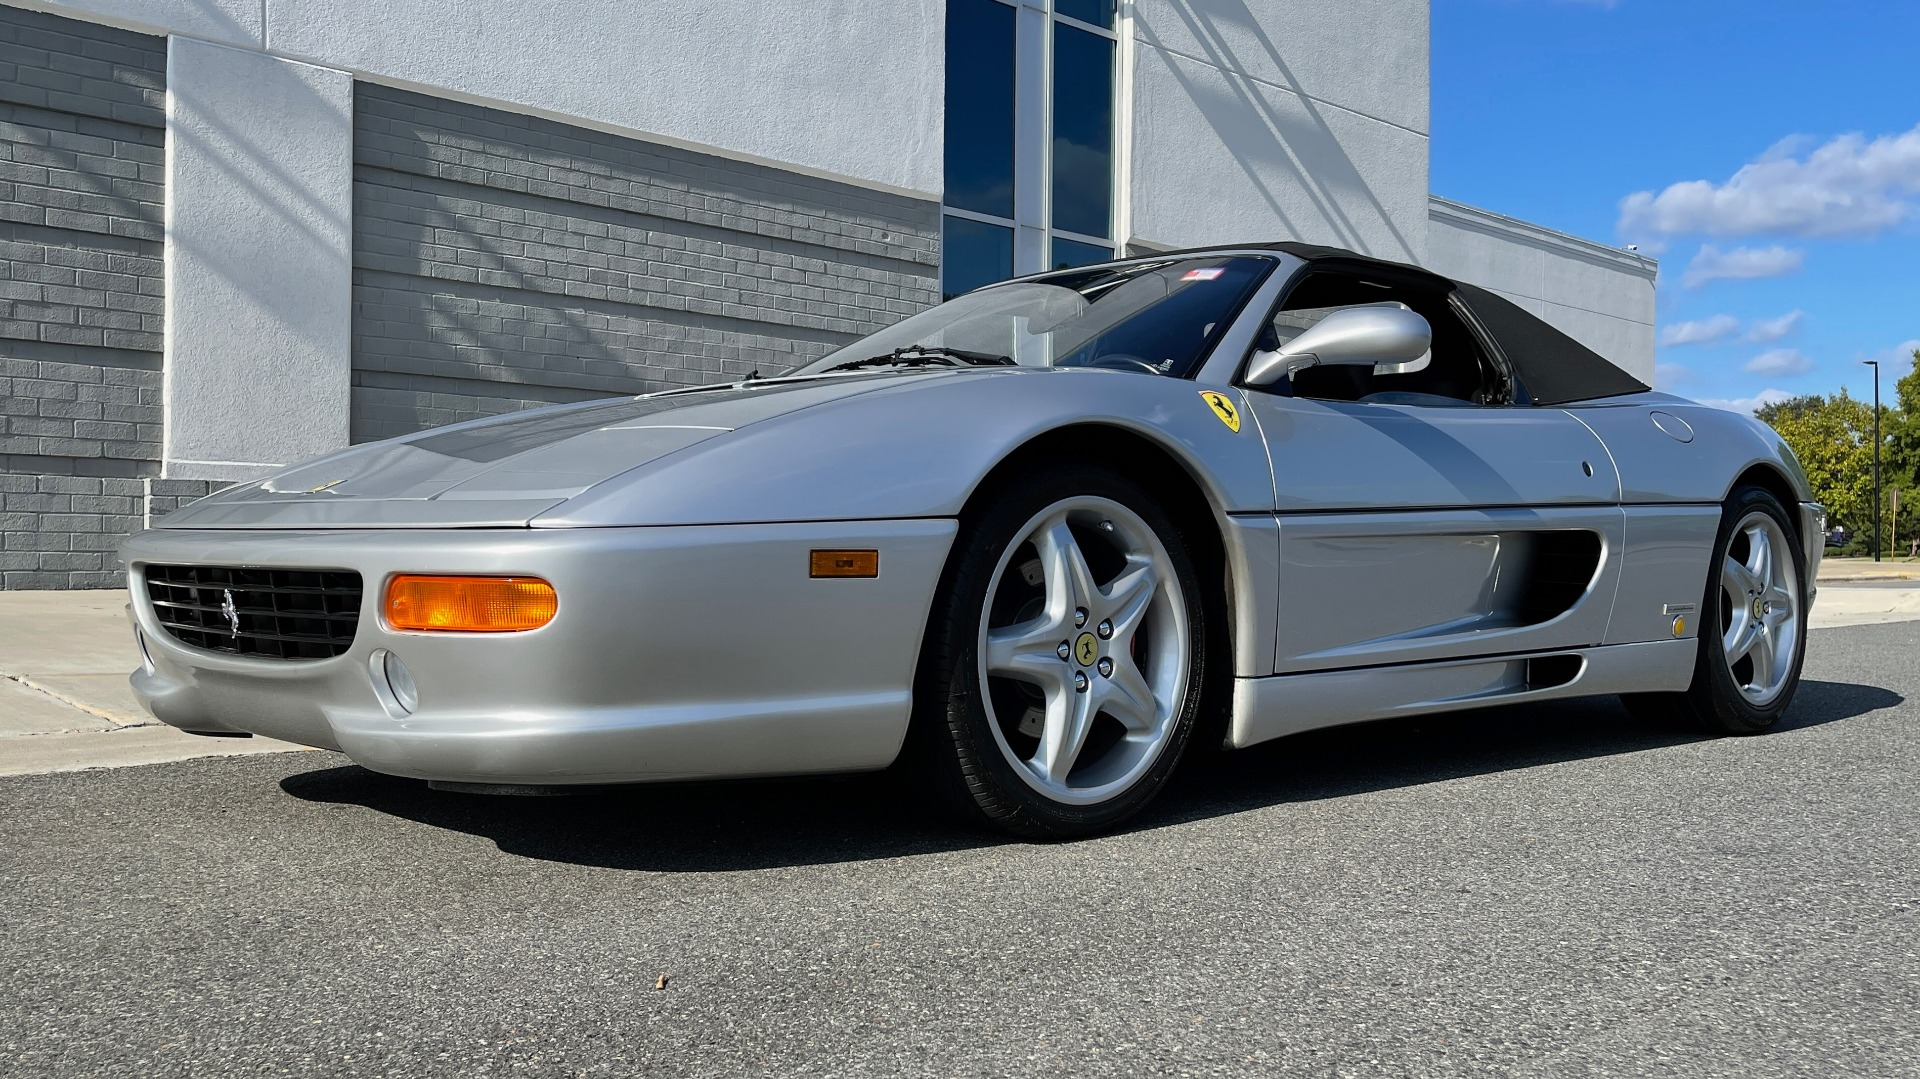 Used 1999 Ferrari F355 SPIDER for sale $95,000 at Formula Imports in Charlotte NC 28227 8